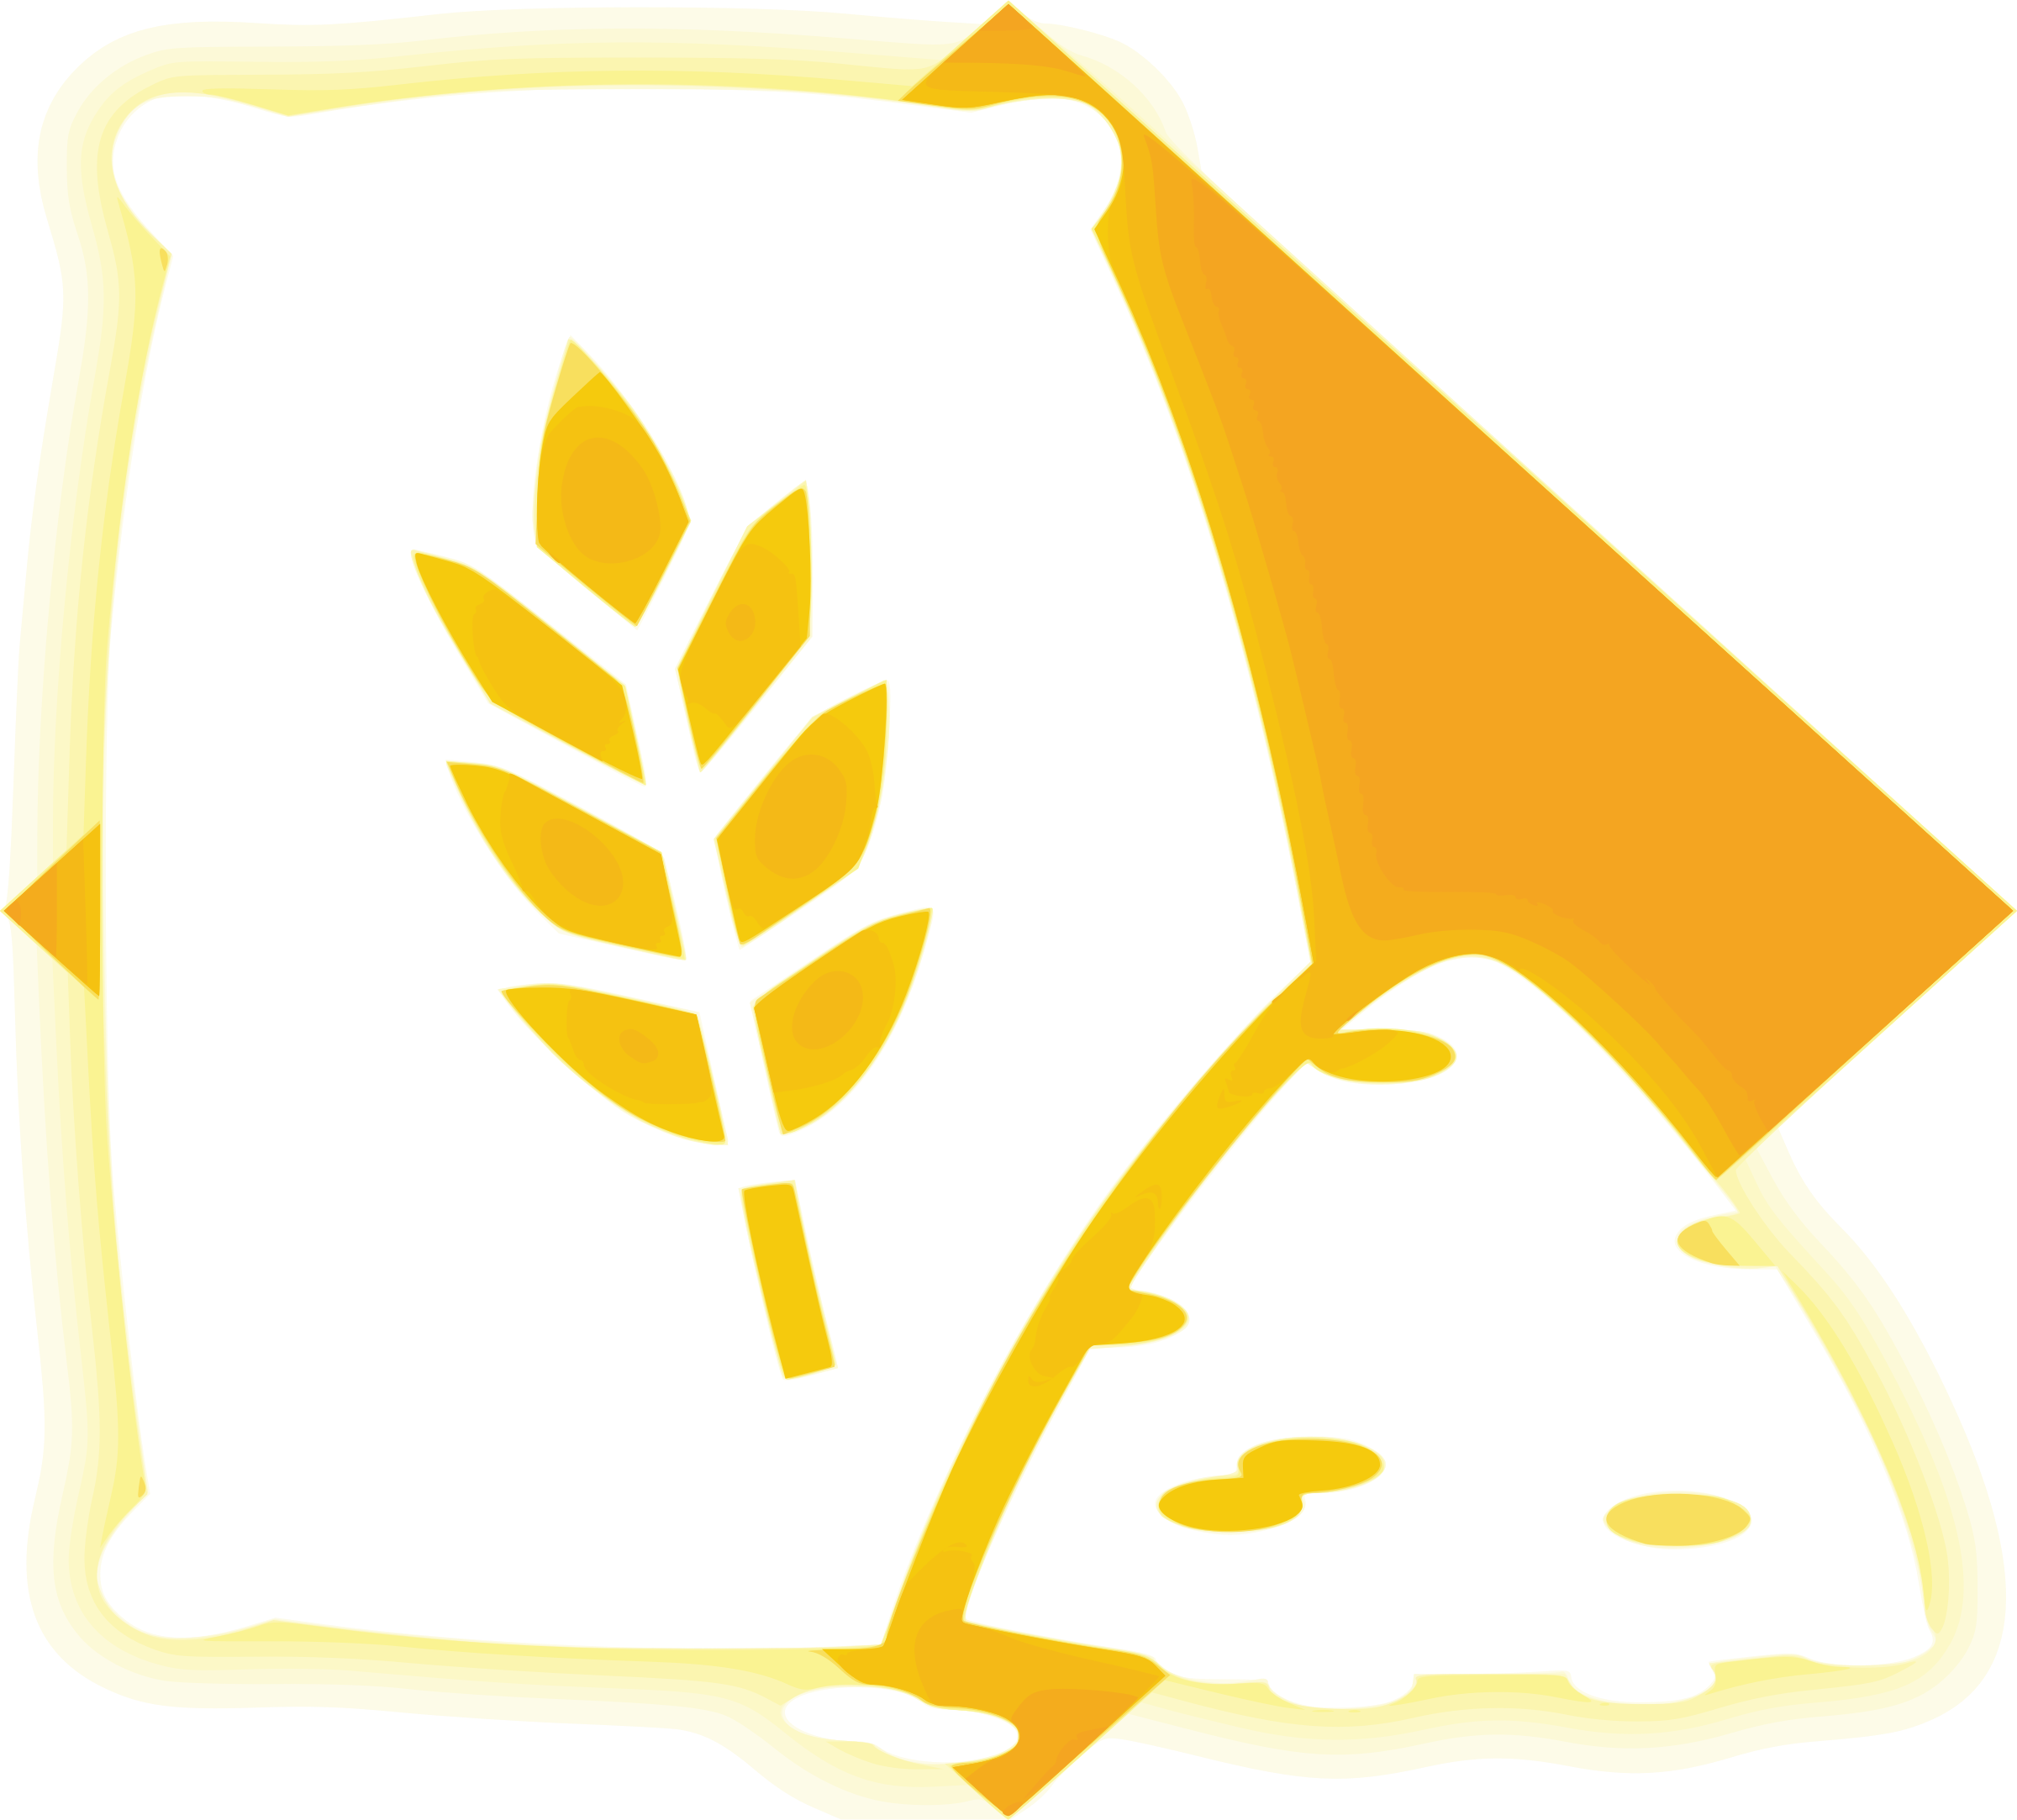 Grain clipart padi More Download Icon Grain of